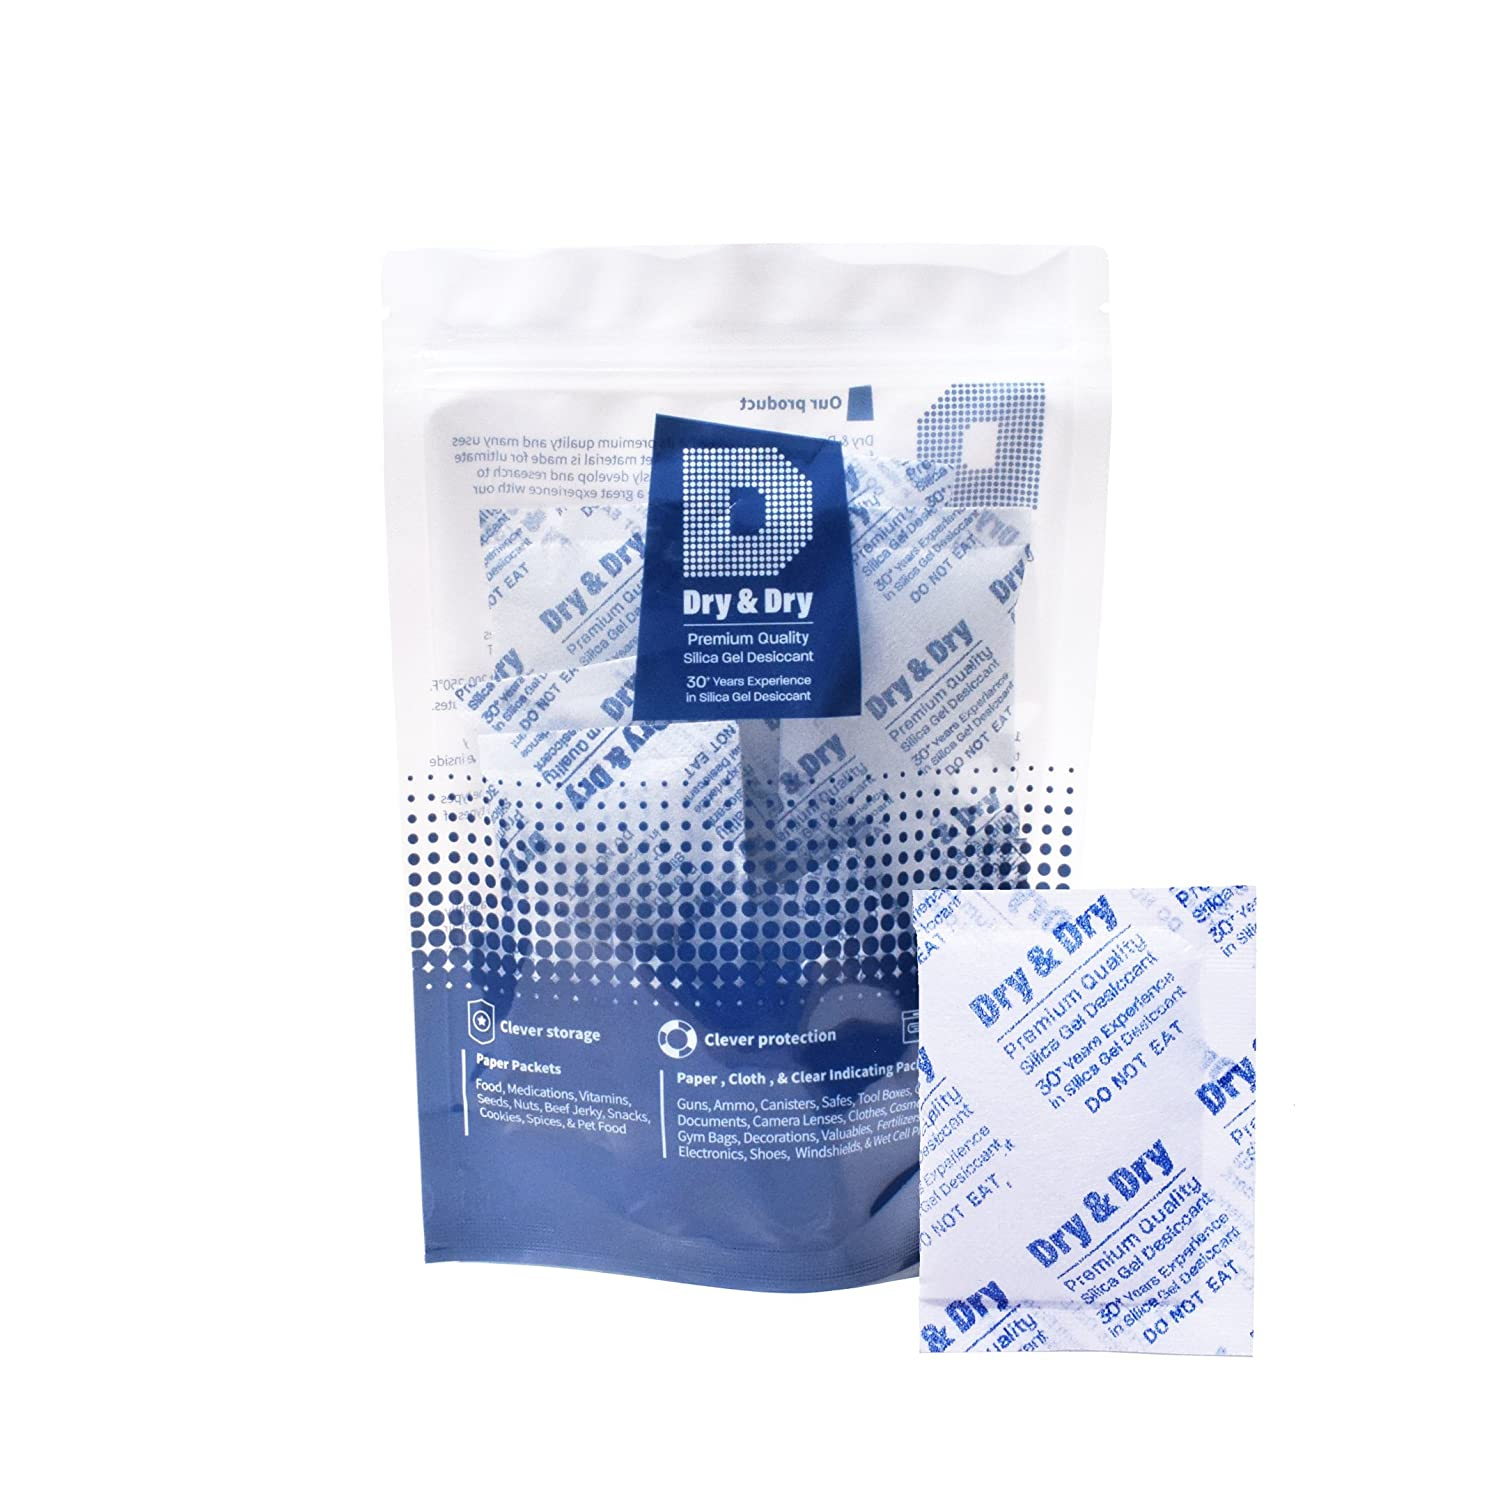 Dry & Dry 10 Gram [10-2000 Packs] Premium Pure & Safe Silica Gel Packets Desiccant Silica Gel Silica Gel Packs - Rechargeable Fabric Silica Packets for Moisture Absorber(30 Packets)